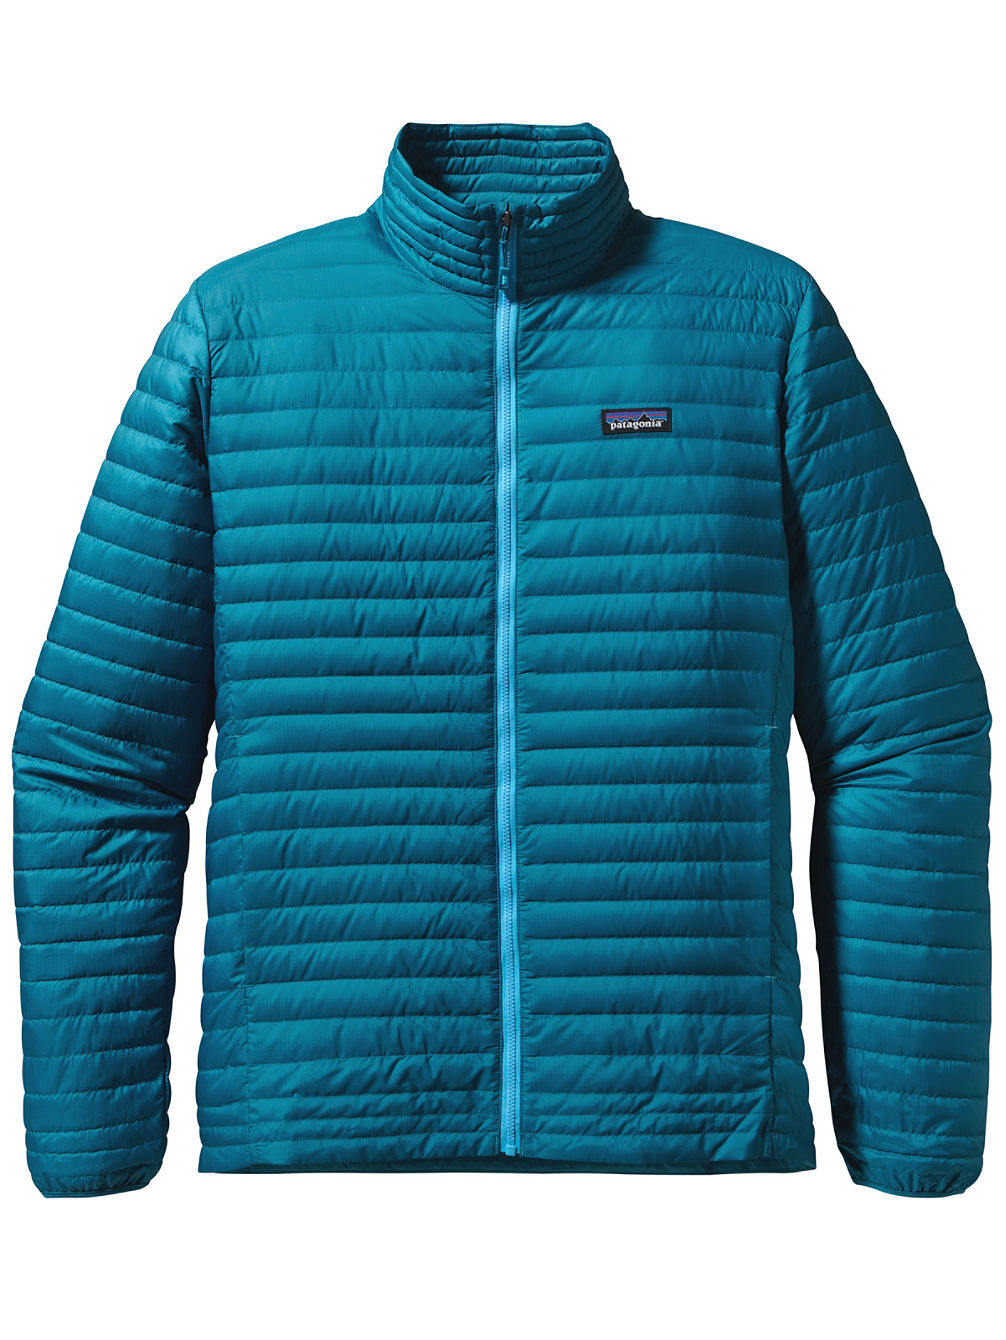 Buy patagonia down shirt jacket online at blue for Patagonia men s recycled down shirt jacket